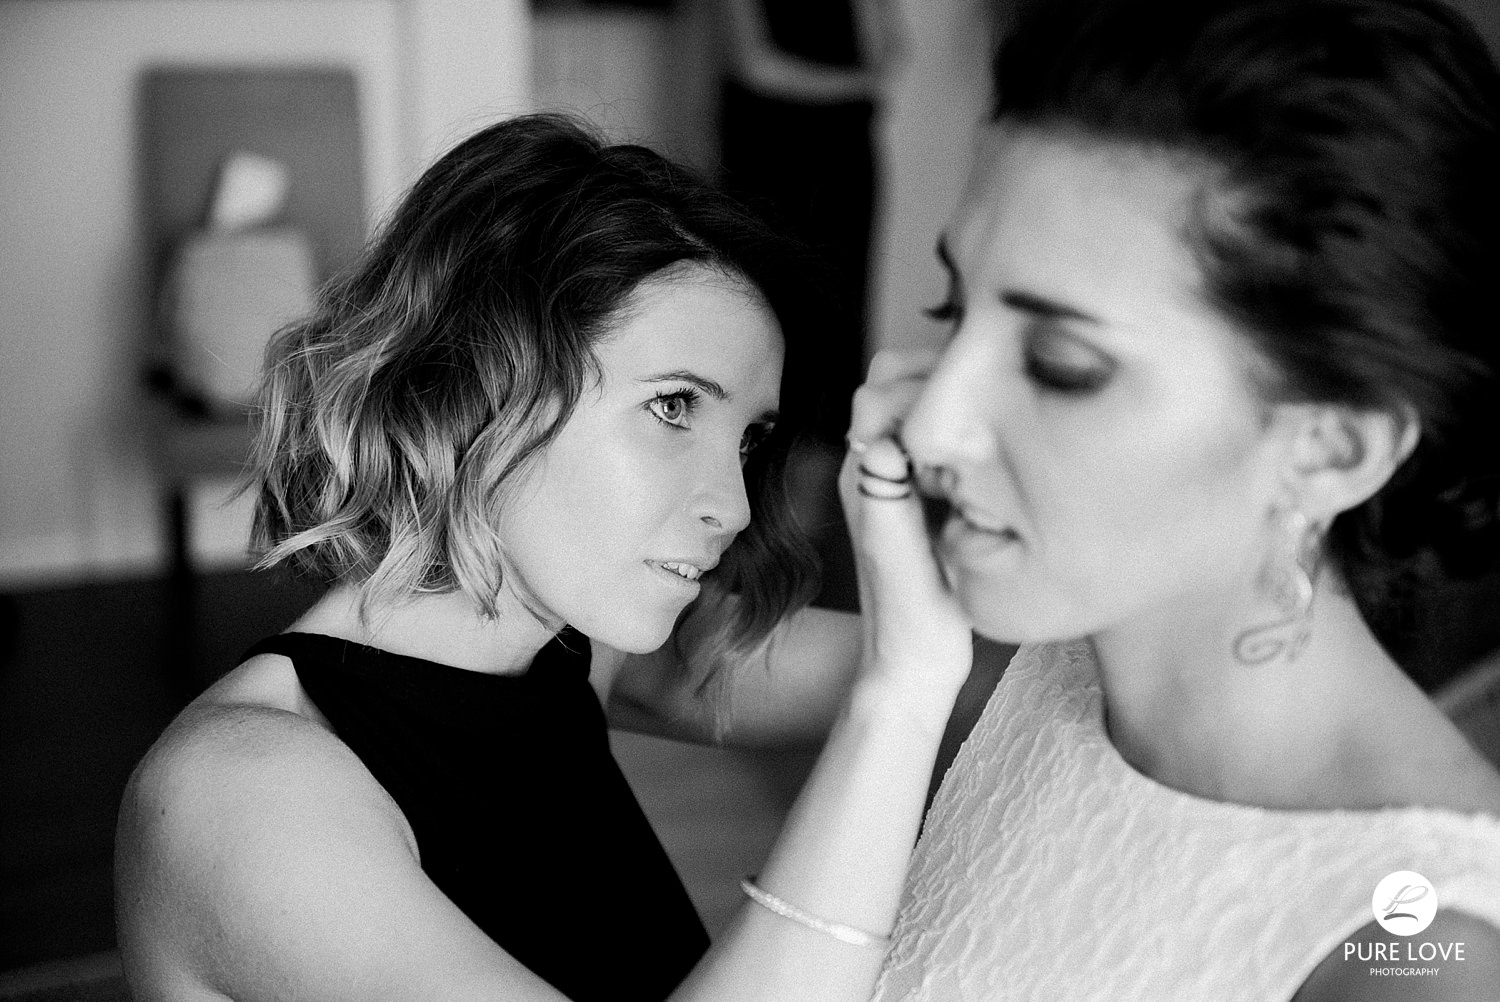 bridesmaid putting earrings on the bride. wedding preparation moments